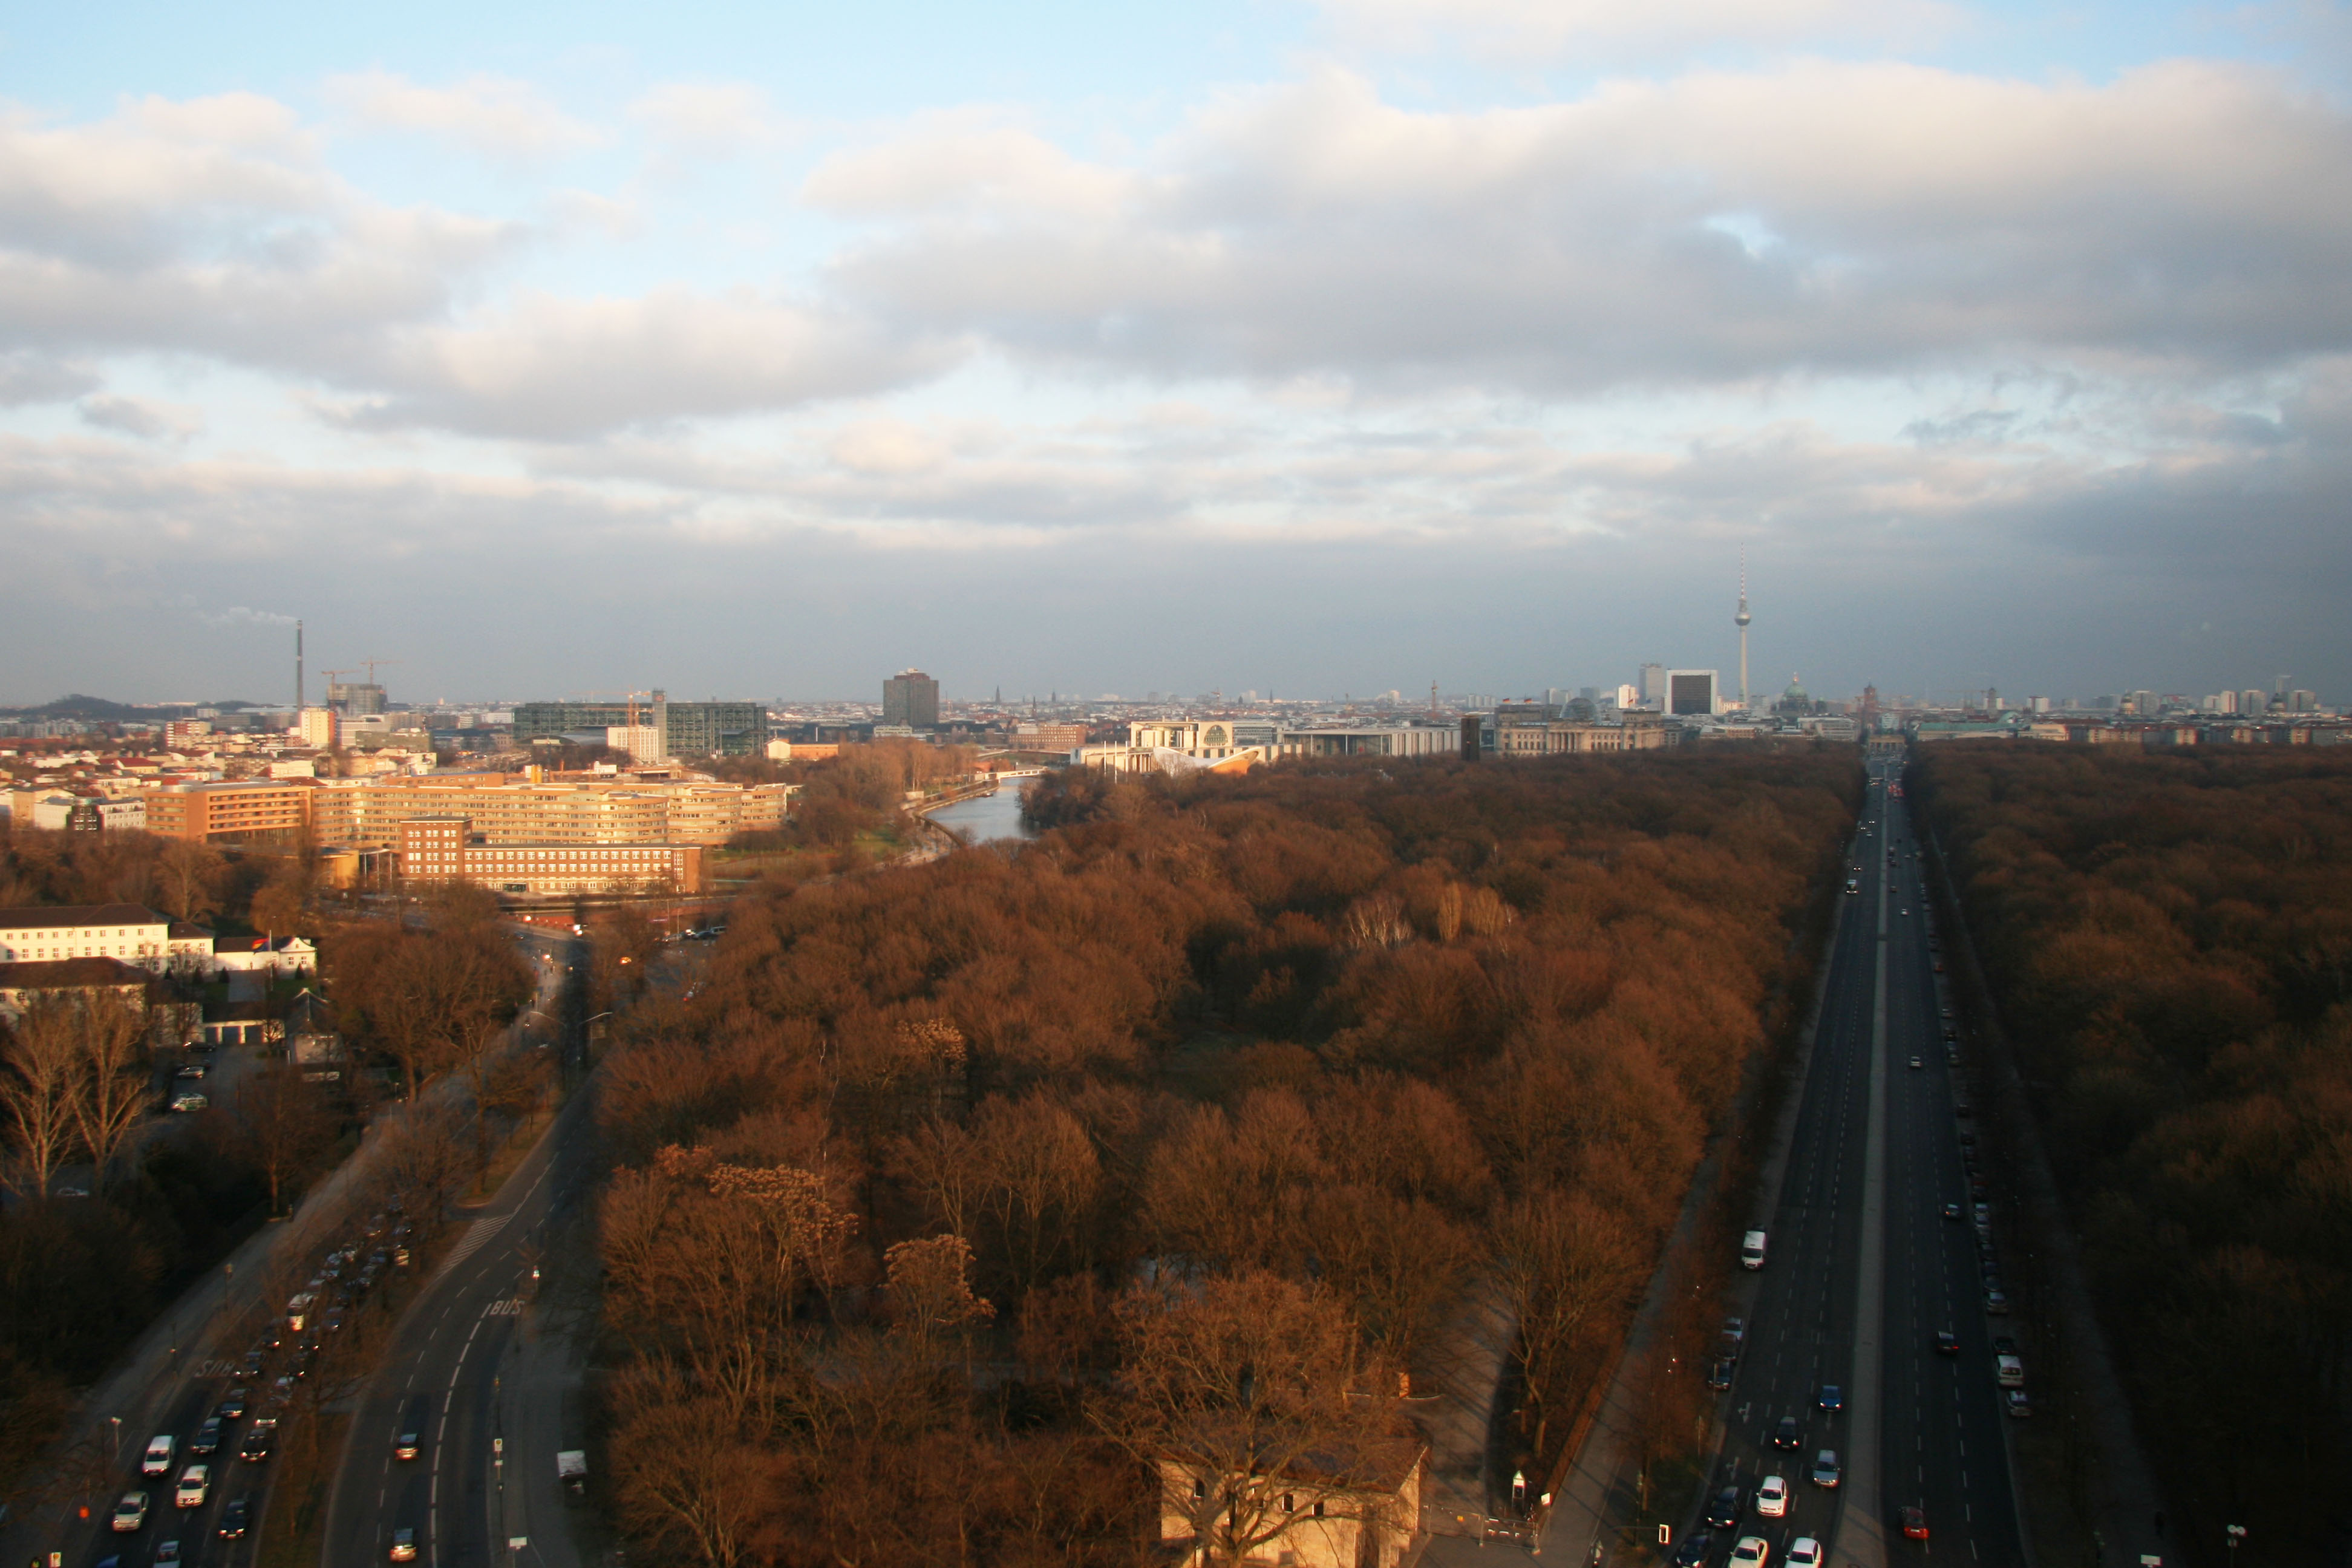 The view towards Berlin Mitte from the Siegessäule (Victory Column) in Berlin